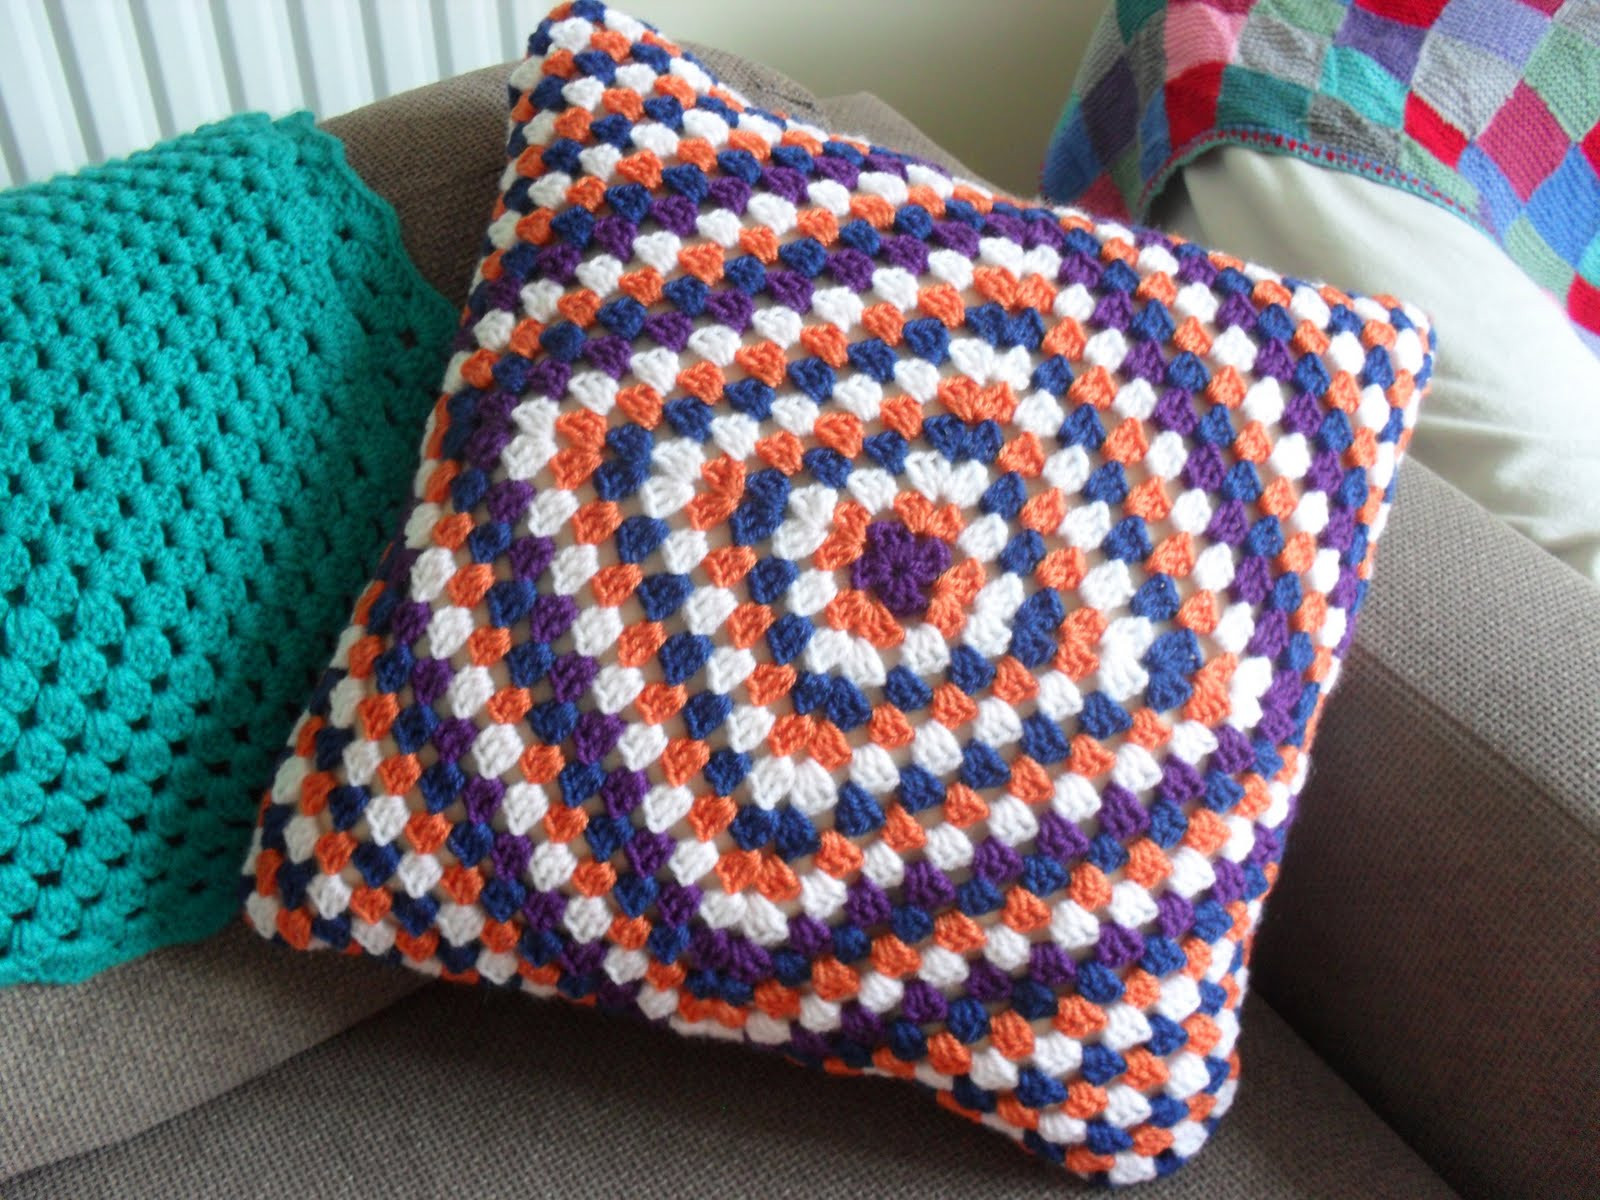 Elegant Crochet Granny Square Cushion Cover Crochet Pillow Covers Of Incredible 47 Pics Crochet Pillow Covers